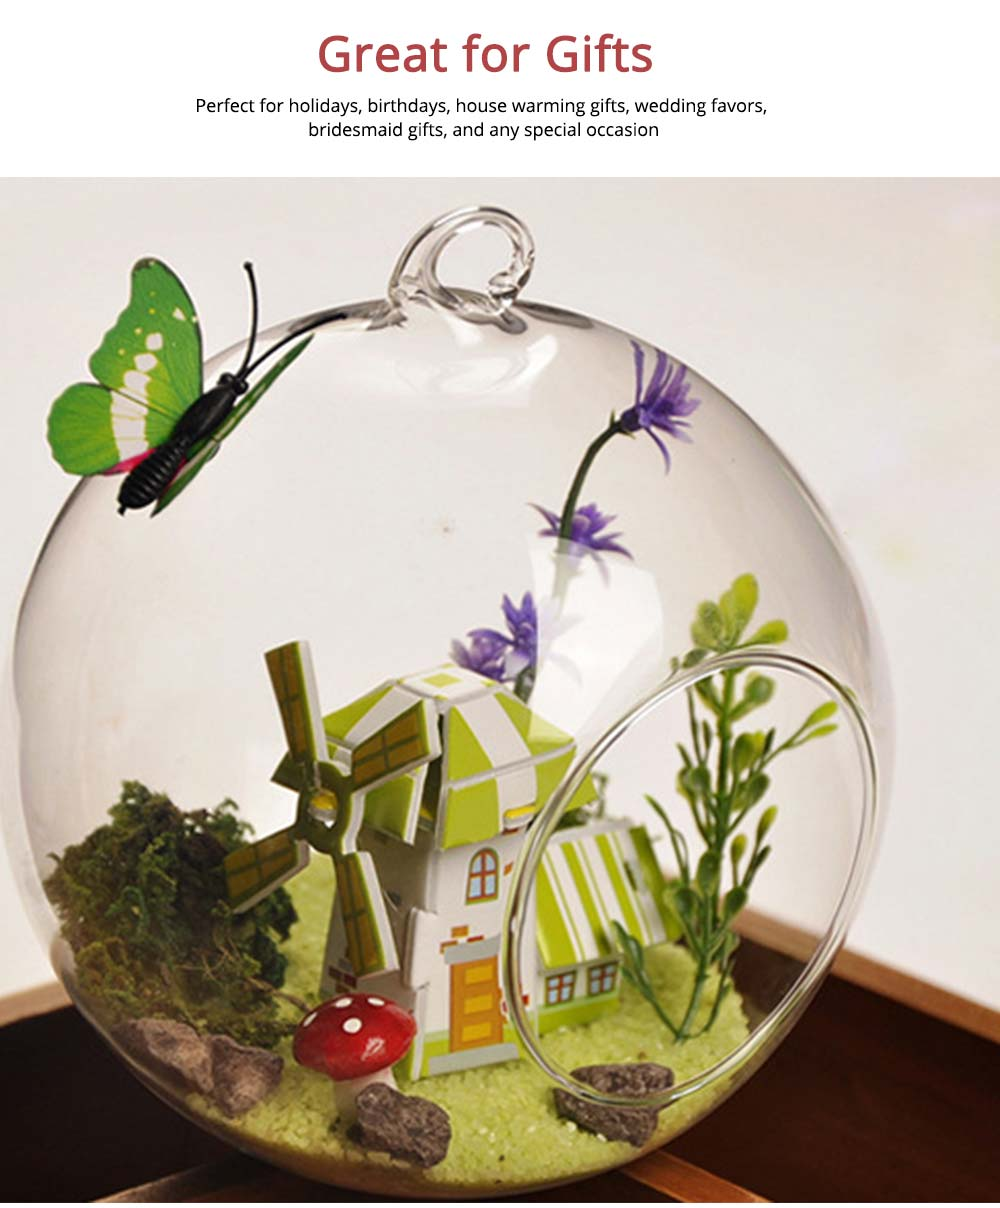 Hanging Glass Terrarium Miniature House Decoration for House, Office, Room,Gift 5